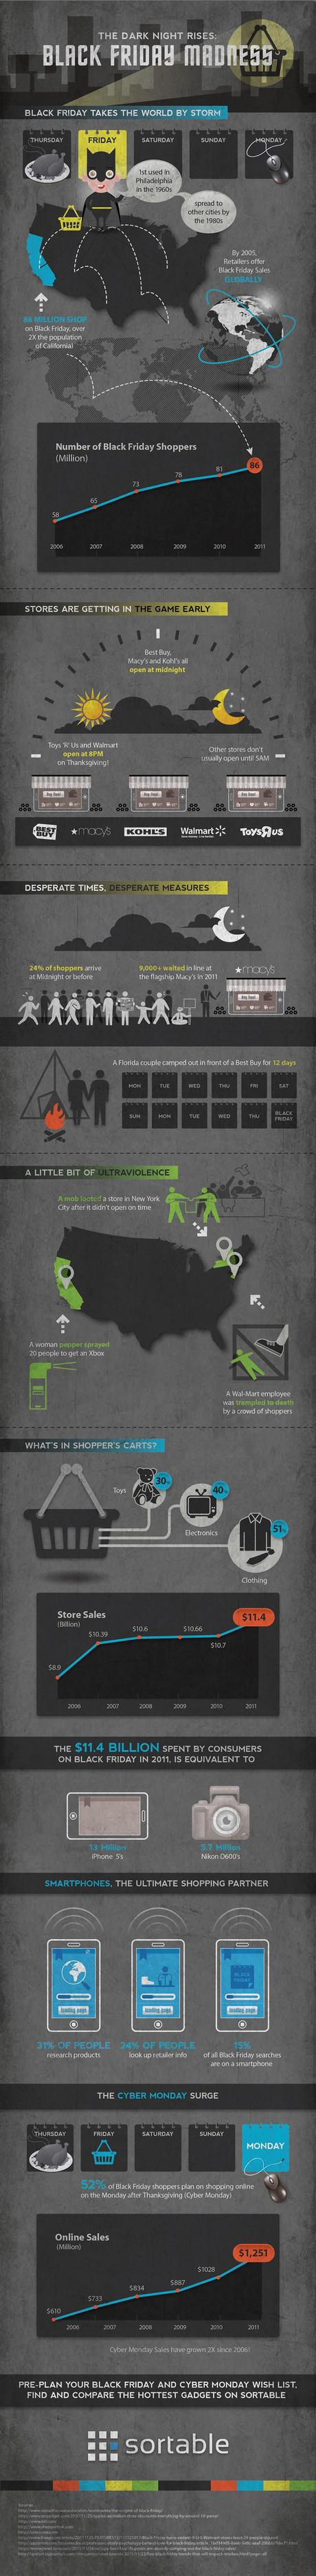 Black Friday Madness Infographic